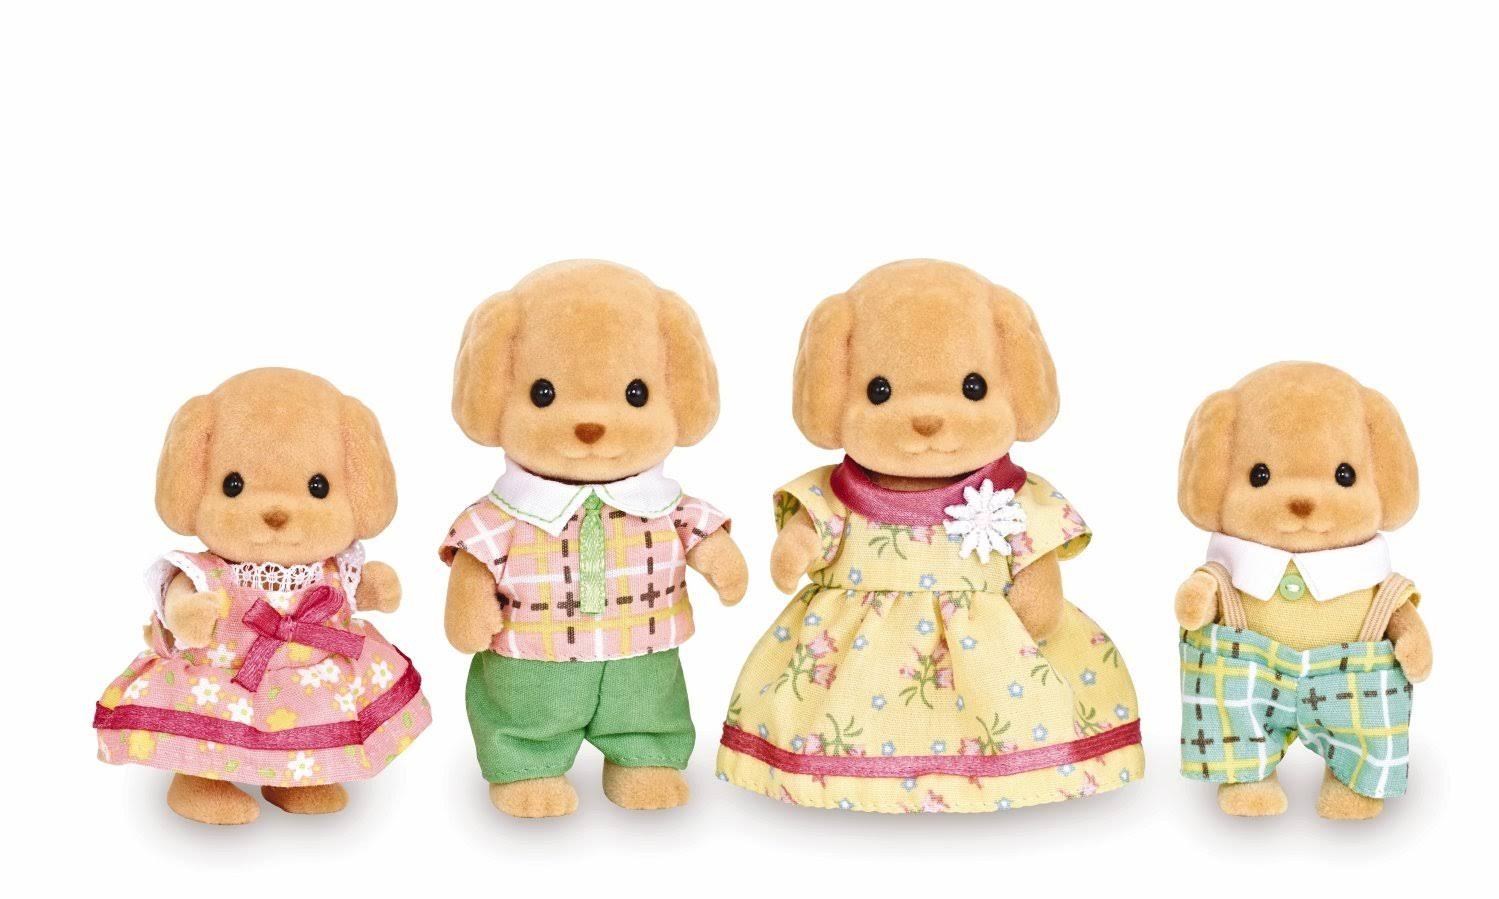 Calico Critters : Toy Poodle Family | Calico Critters | General | Delivery Guaranteed | 30 Day Money Back Guarantee | Best Price Guarantee